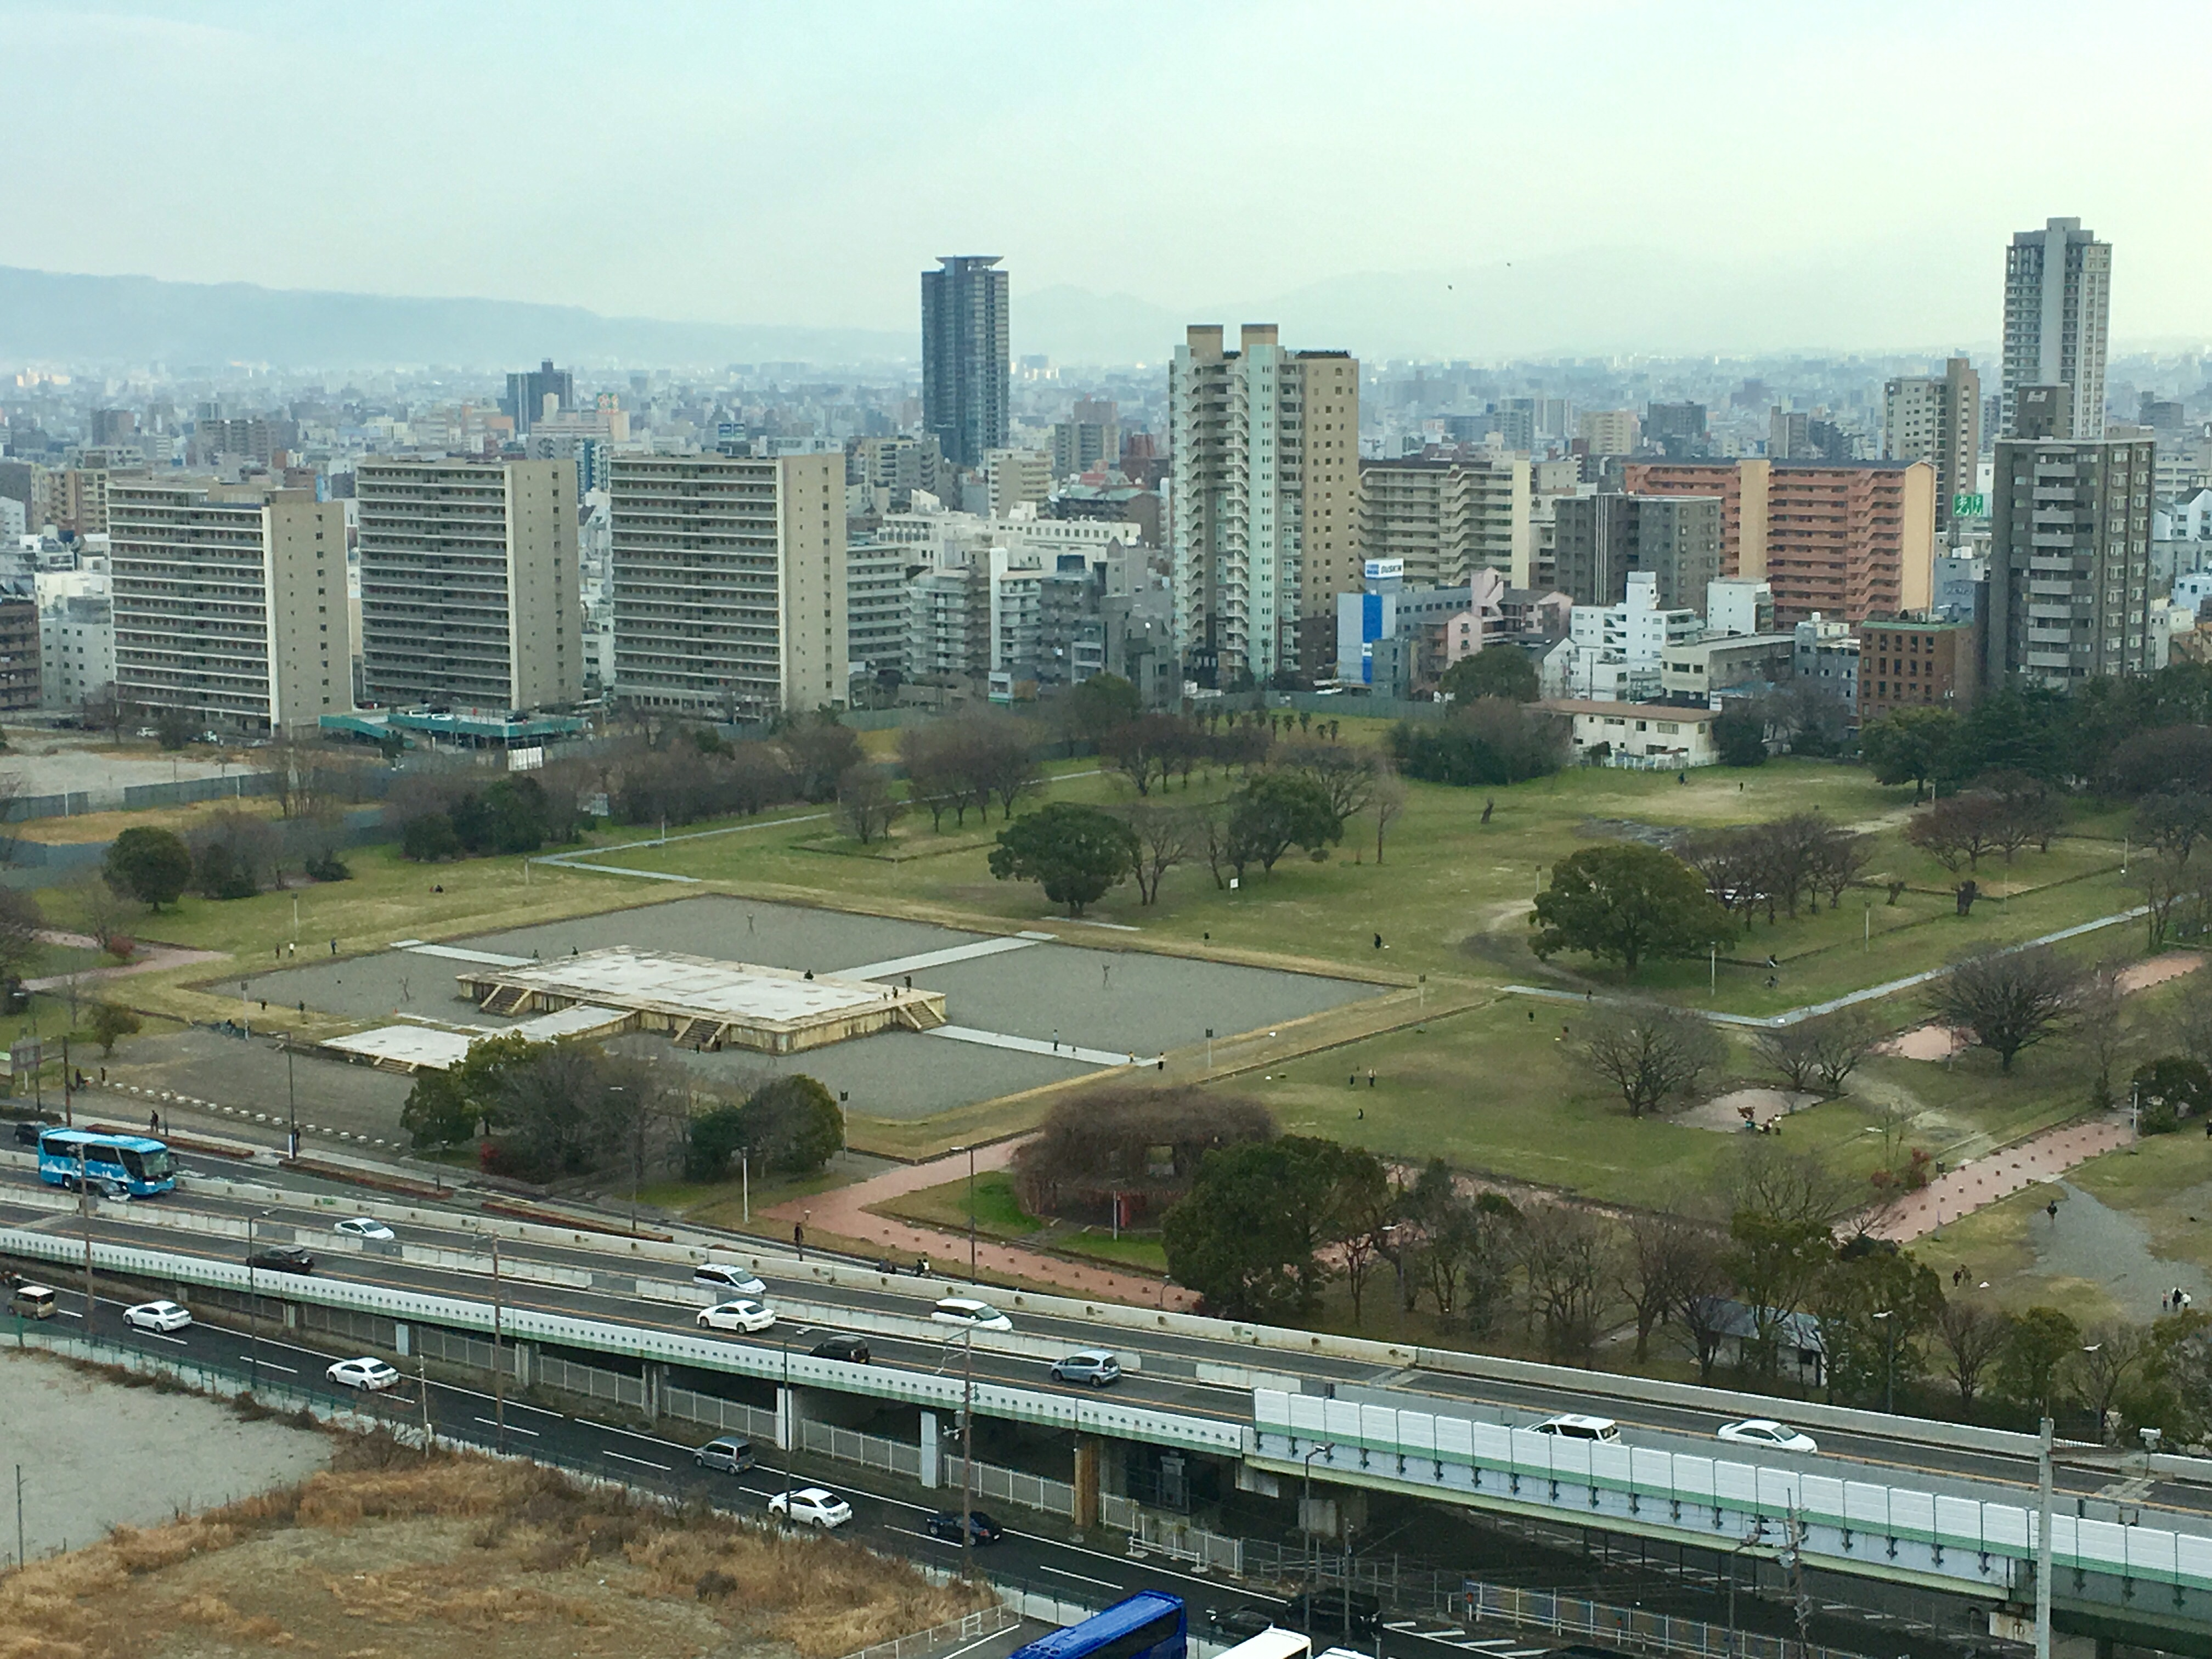 View of Naniwa Palace site from the 10th floor of the Osaka History Museum